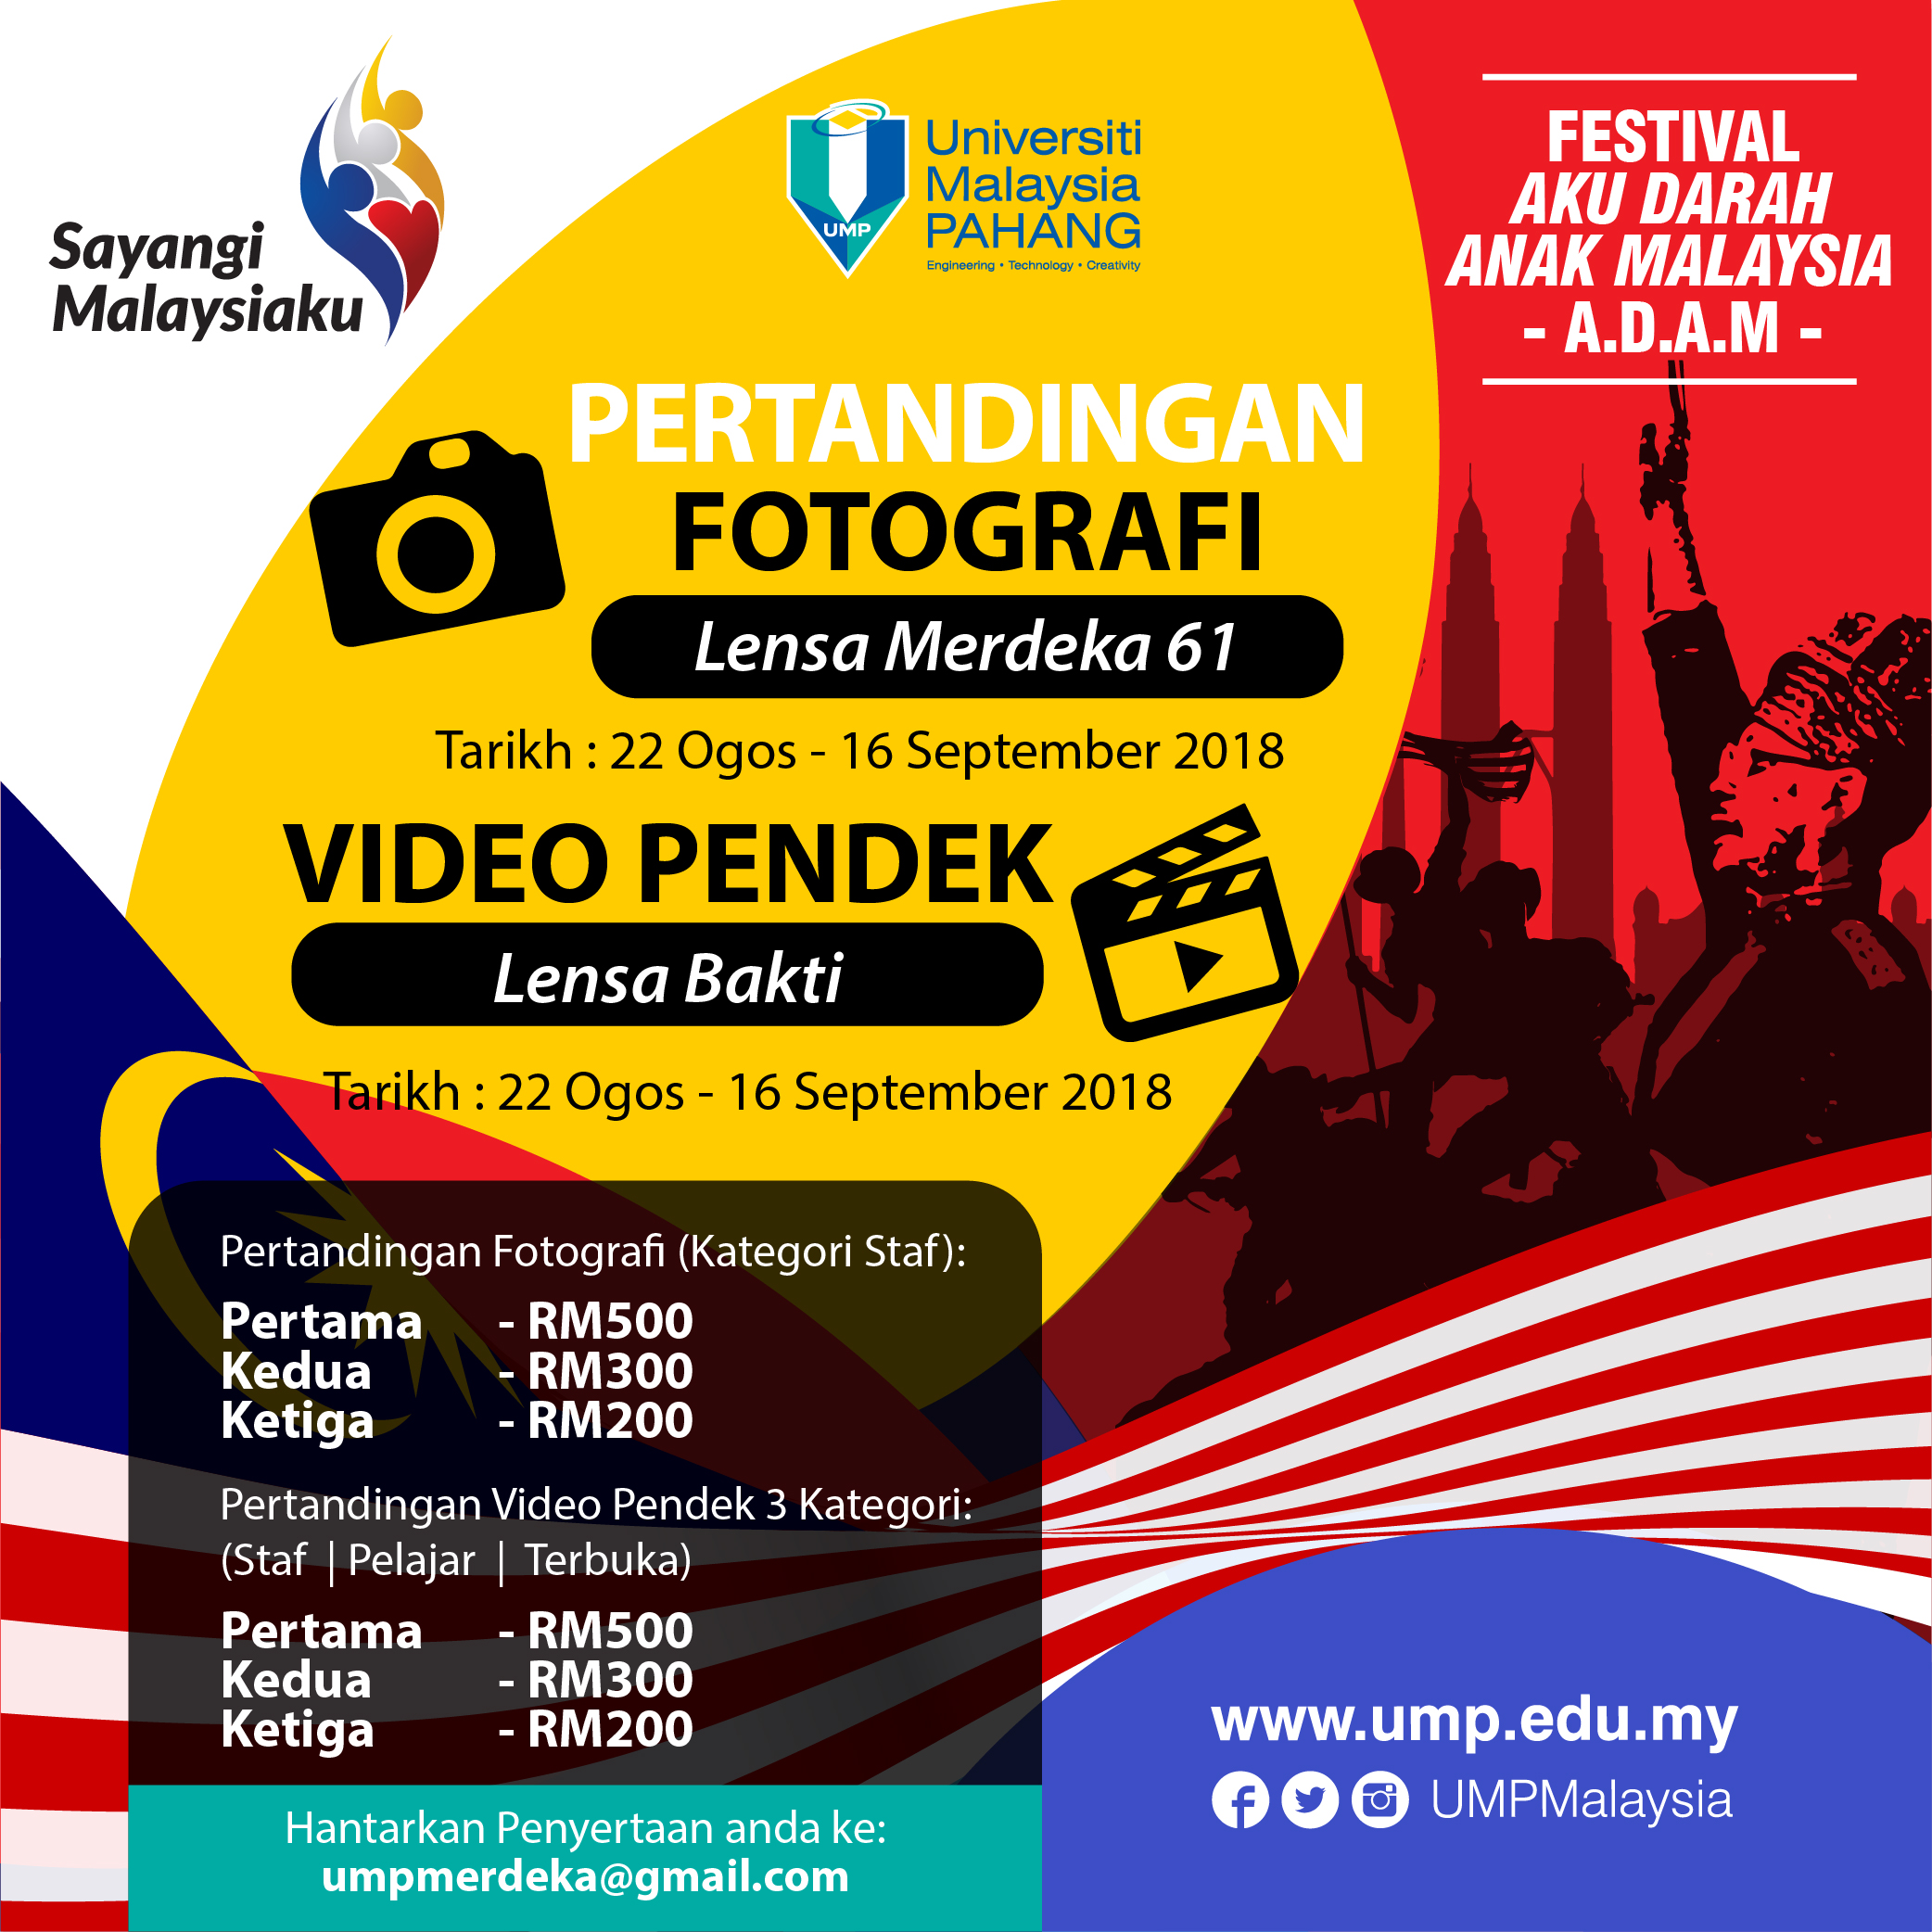 PERTANDINGAN FOTO DAN VIDEO PENDEK